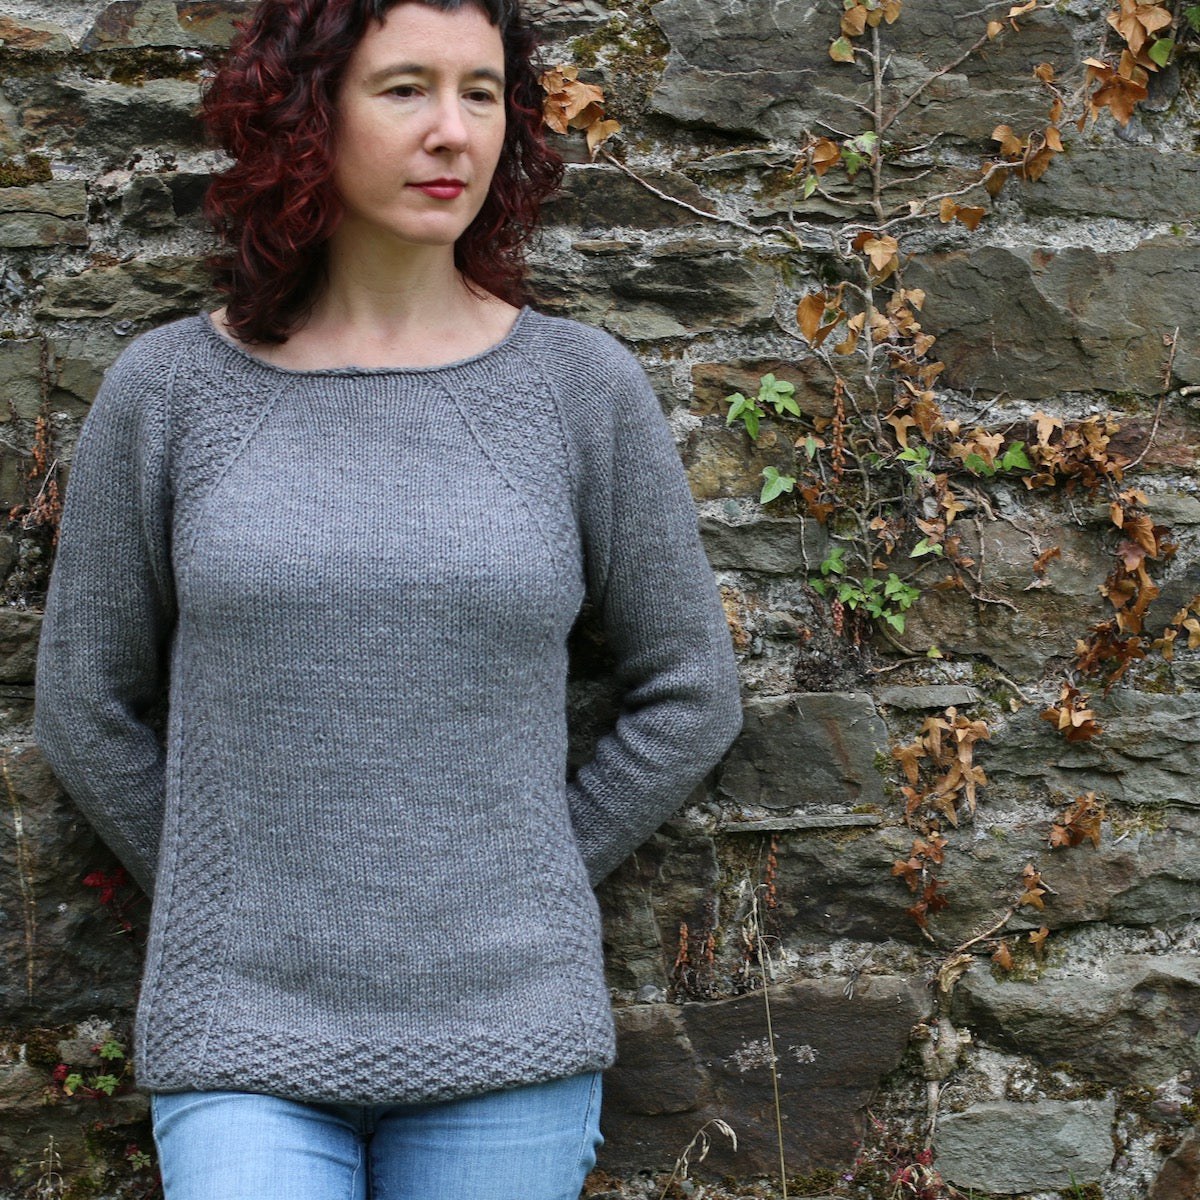 image of woman standing against a stone wall wearing a grey knitted sweater and looking down